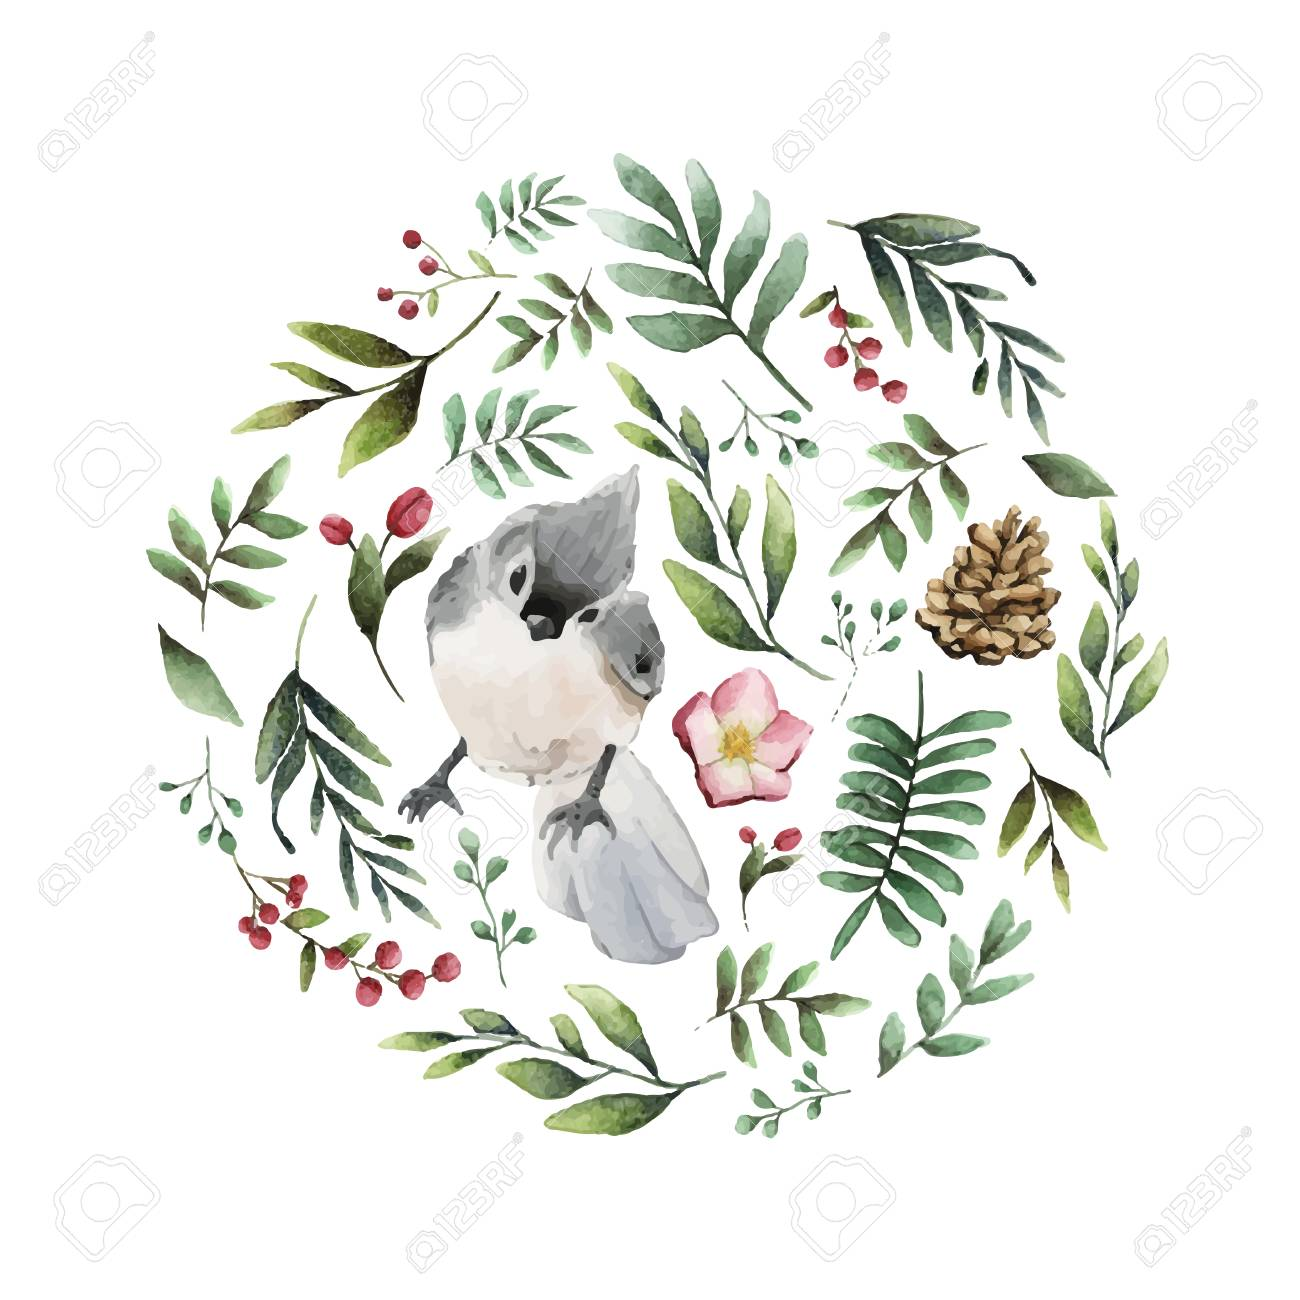 Tufted titmouse bird surrounded by flowers and leaves watercolor painting vector - 126248990